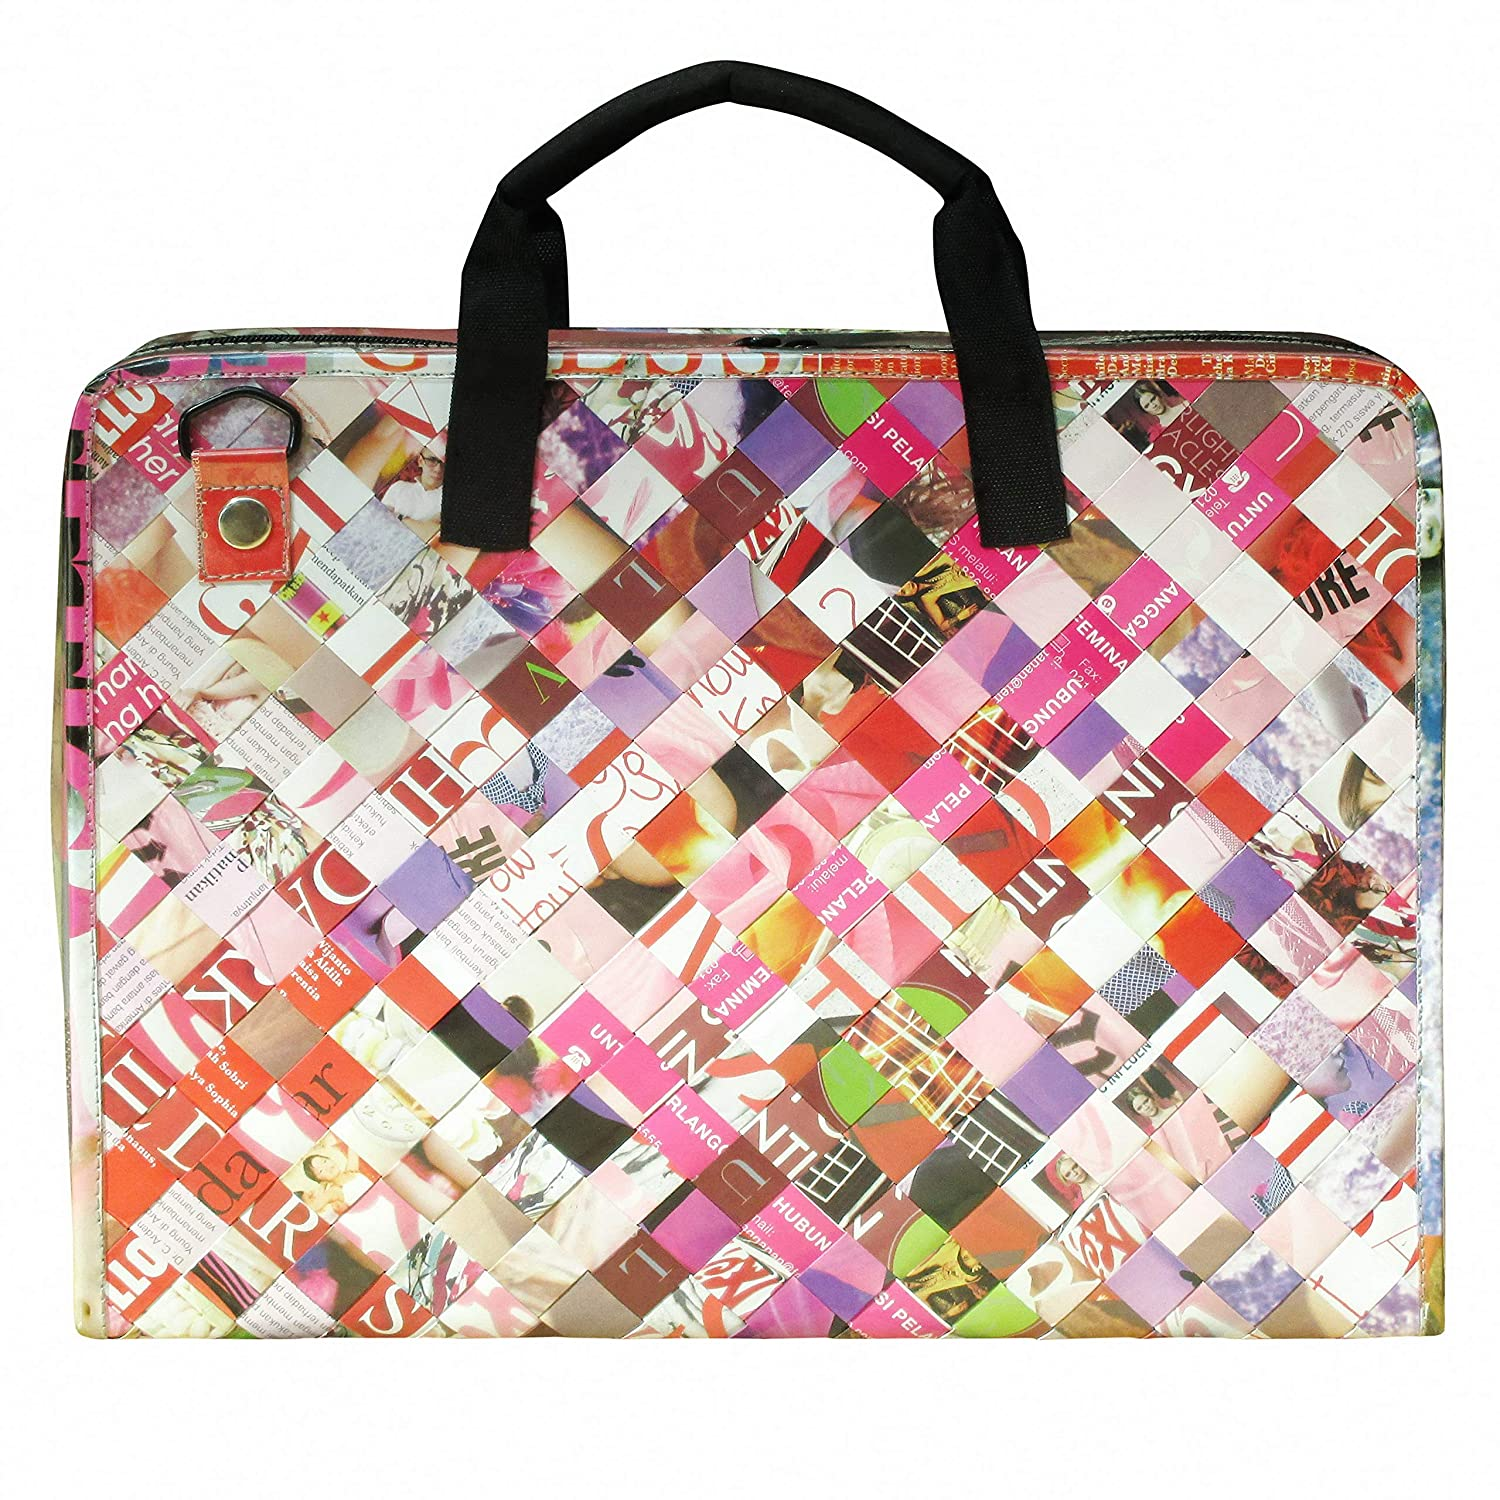 4838a80723 Amazon.com  LAPTOP briefcase made of magazine paper